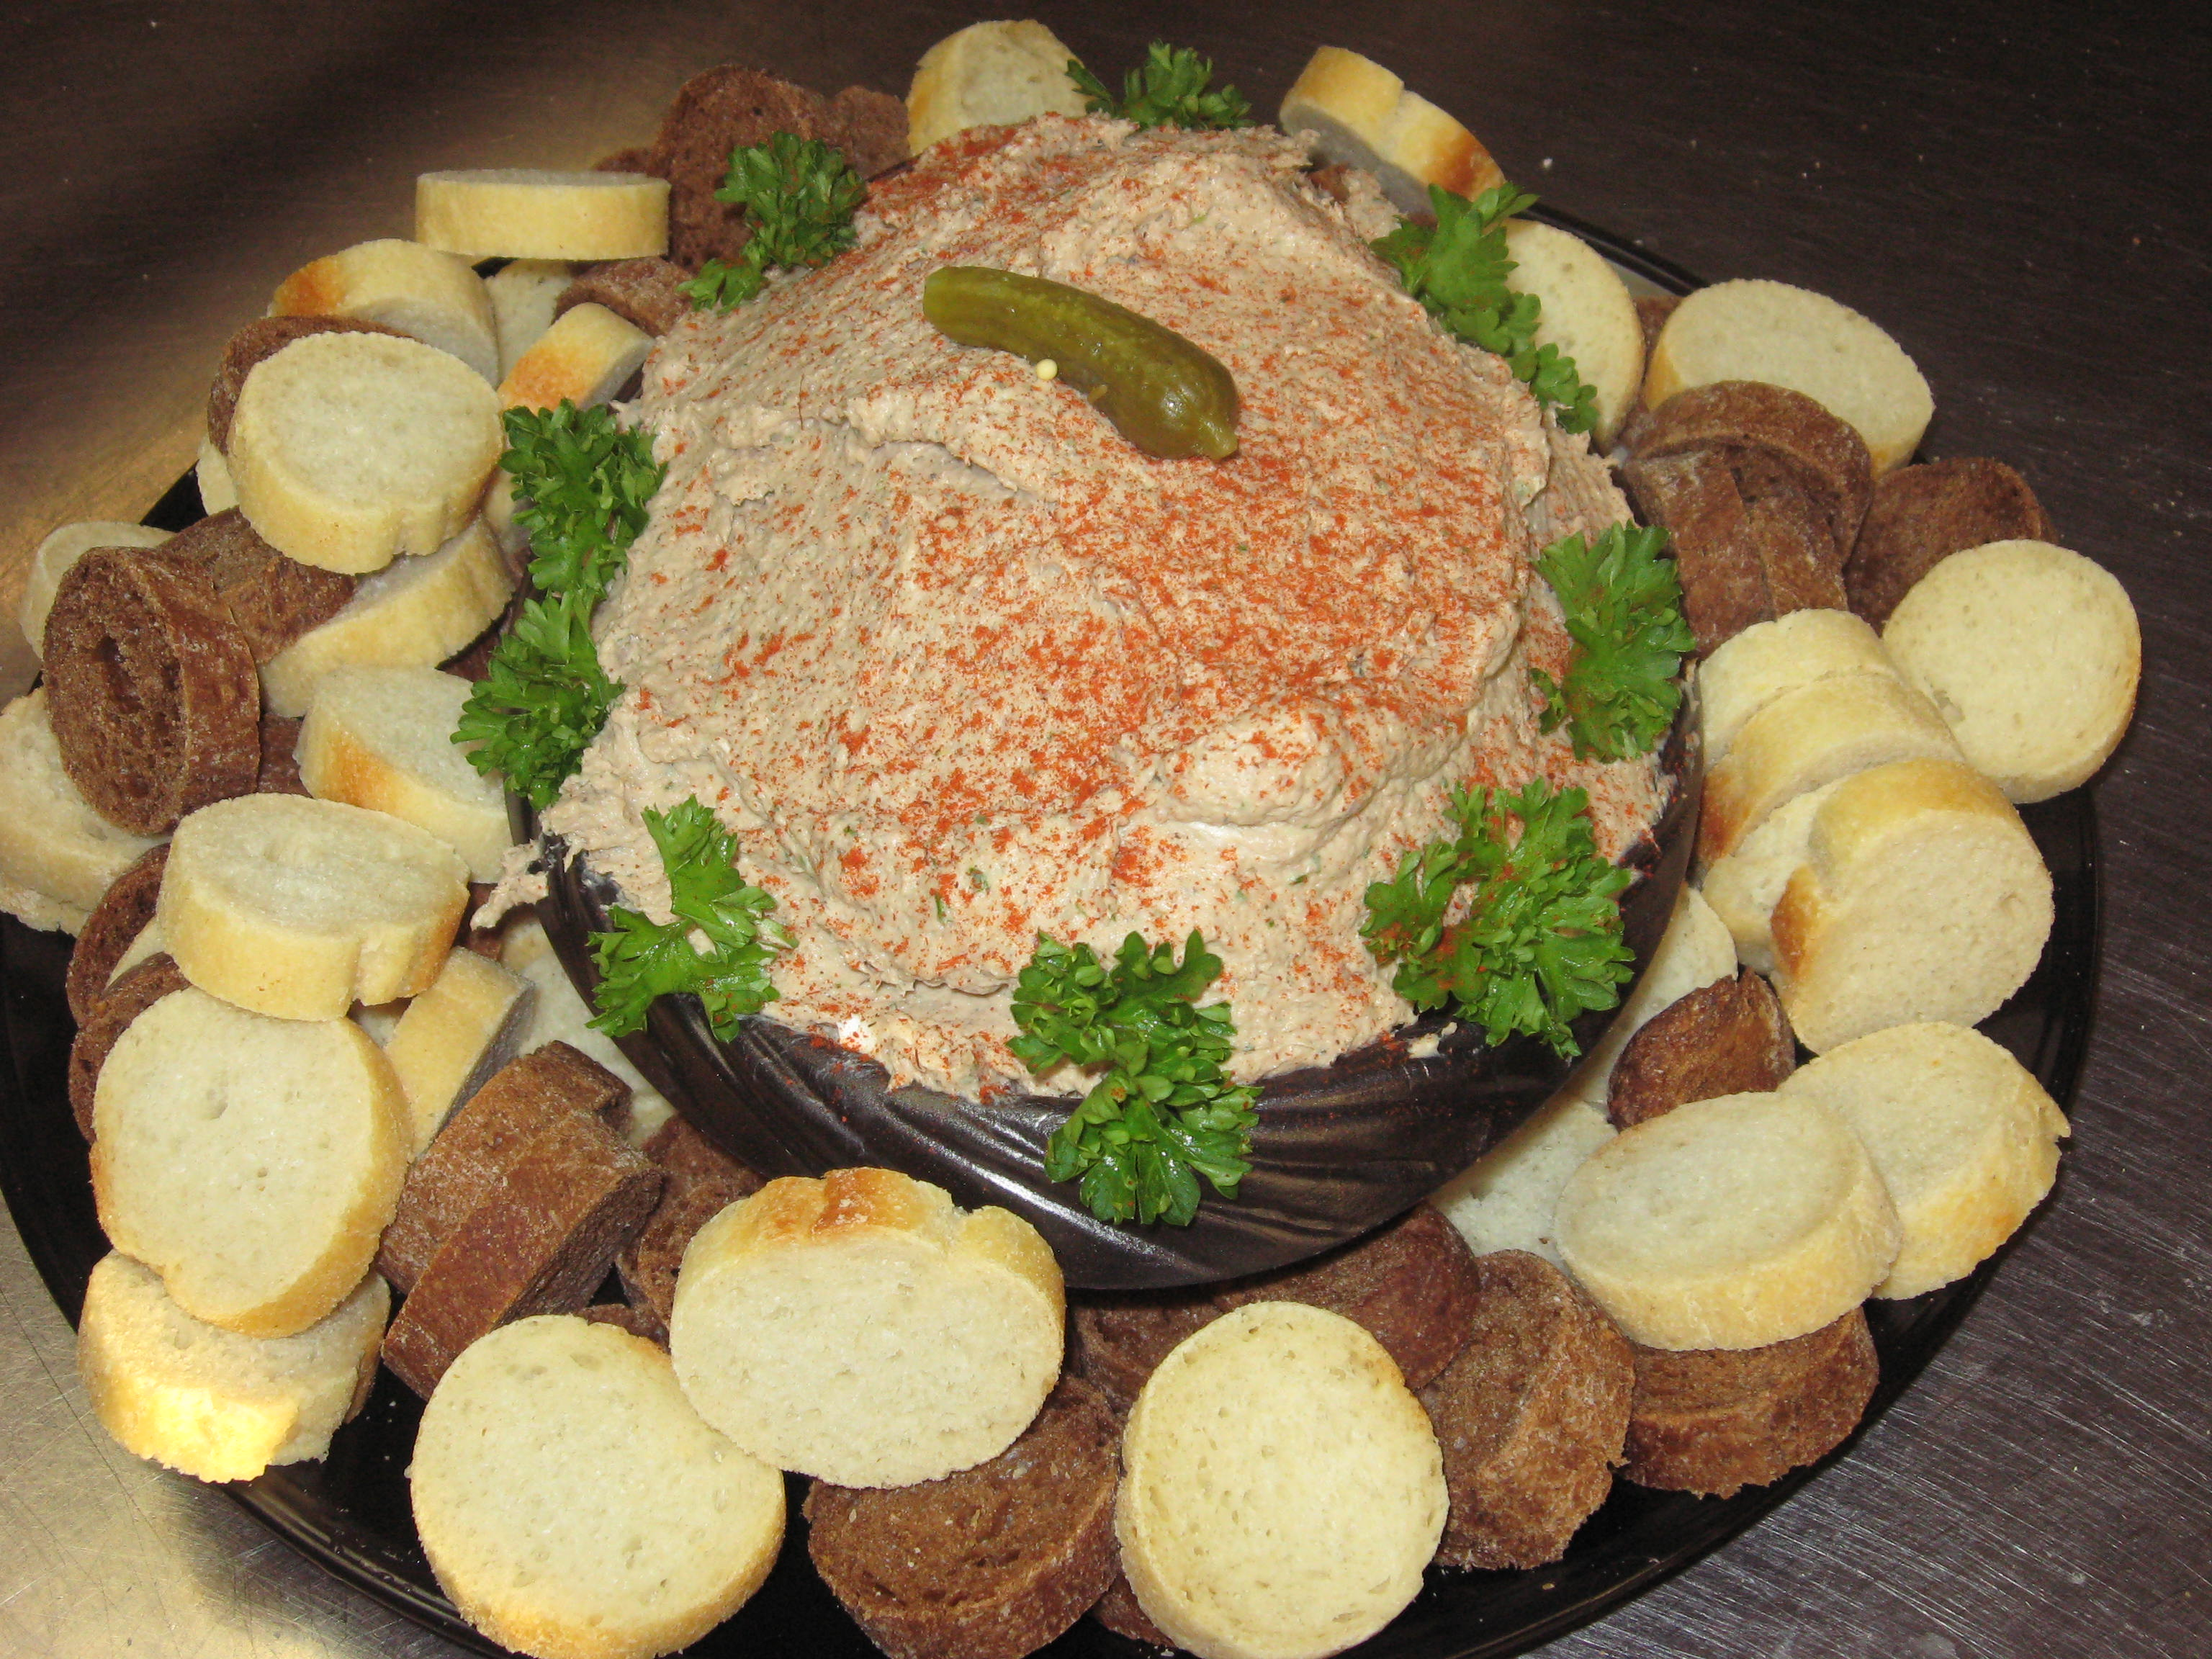 Pate Appetizer Tray